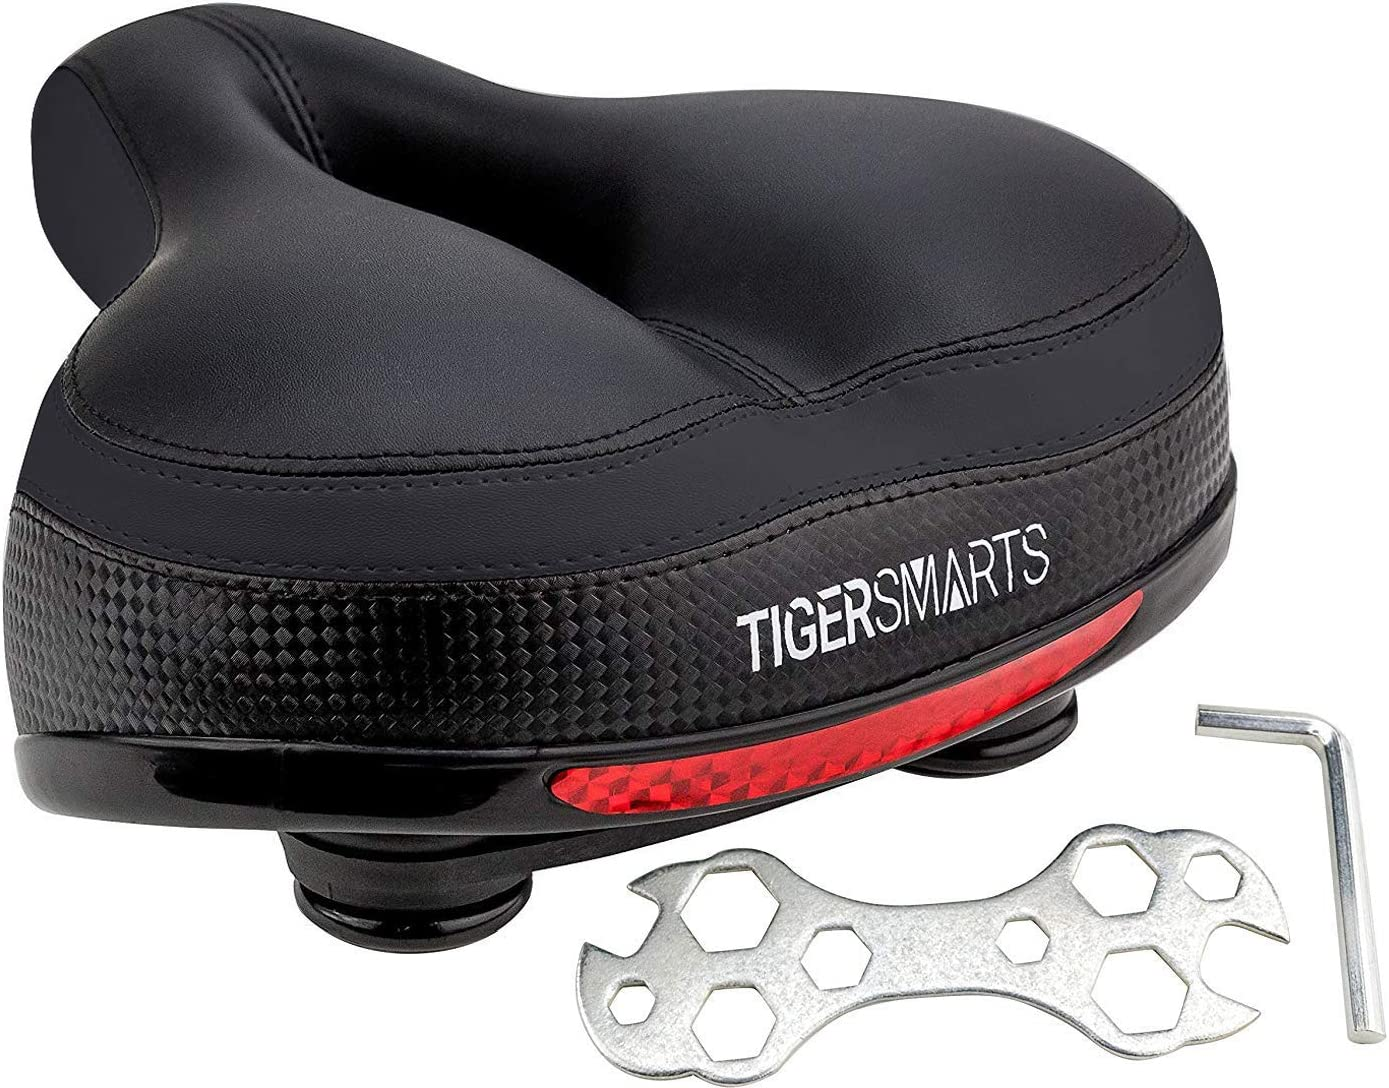 TIGERSMARTS Max 59% OFF Bike Seat online shopping Replacement Bicycle Padded Sea Comfortable